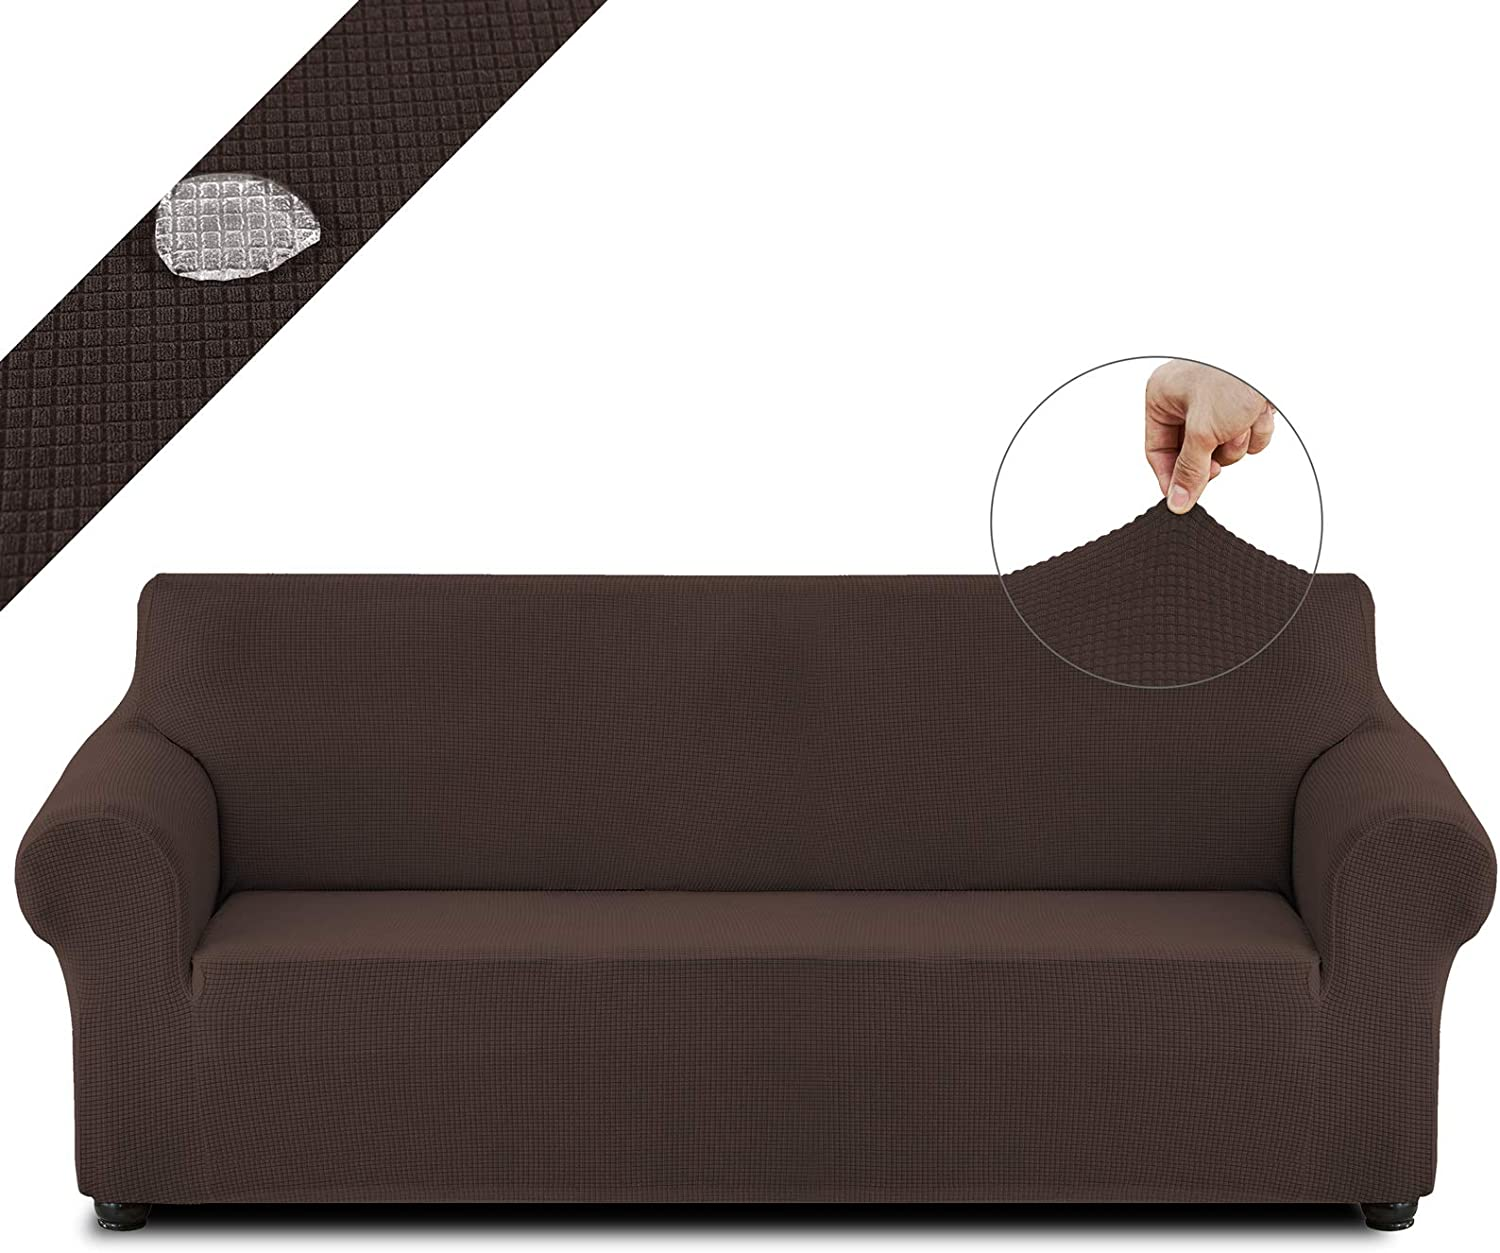 Cristgee Water Repellent Sofa Slipcover, Stretch Oversized Couch Cover, Washable Waffle Furniture Protector with Elastic Bottom & Non-Skid Foam, for Kids & Pets (Oversized Sofa, Chocolate)